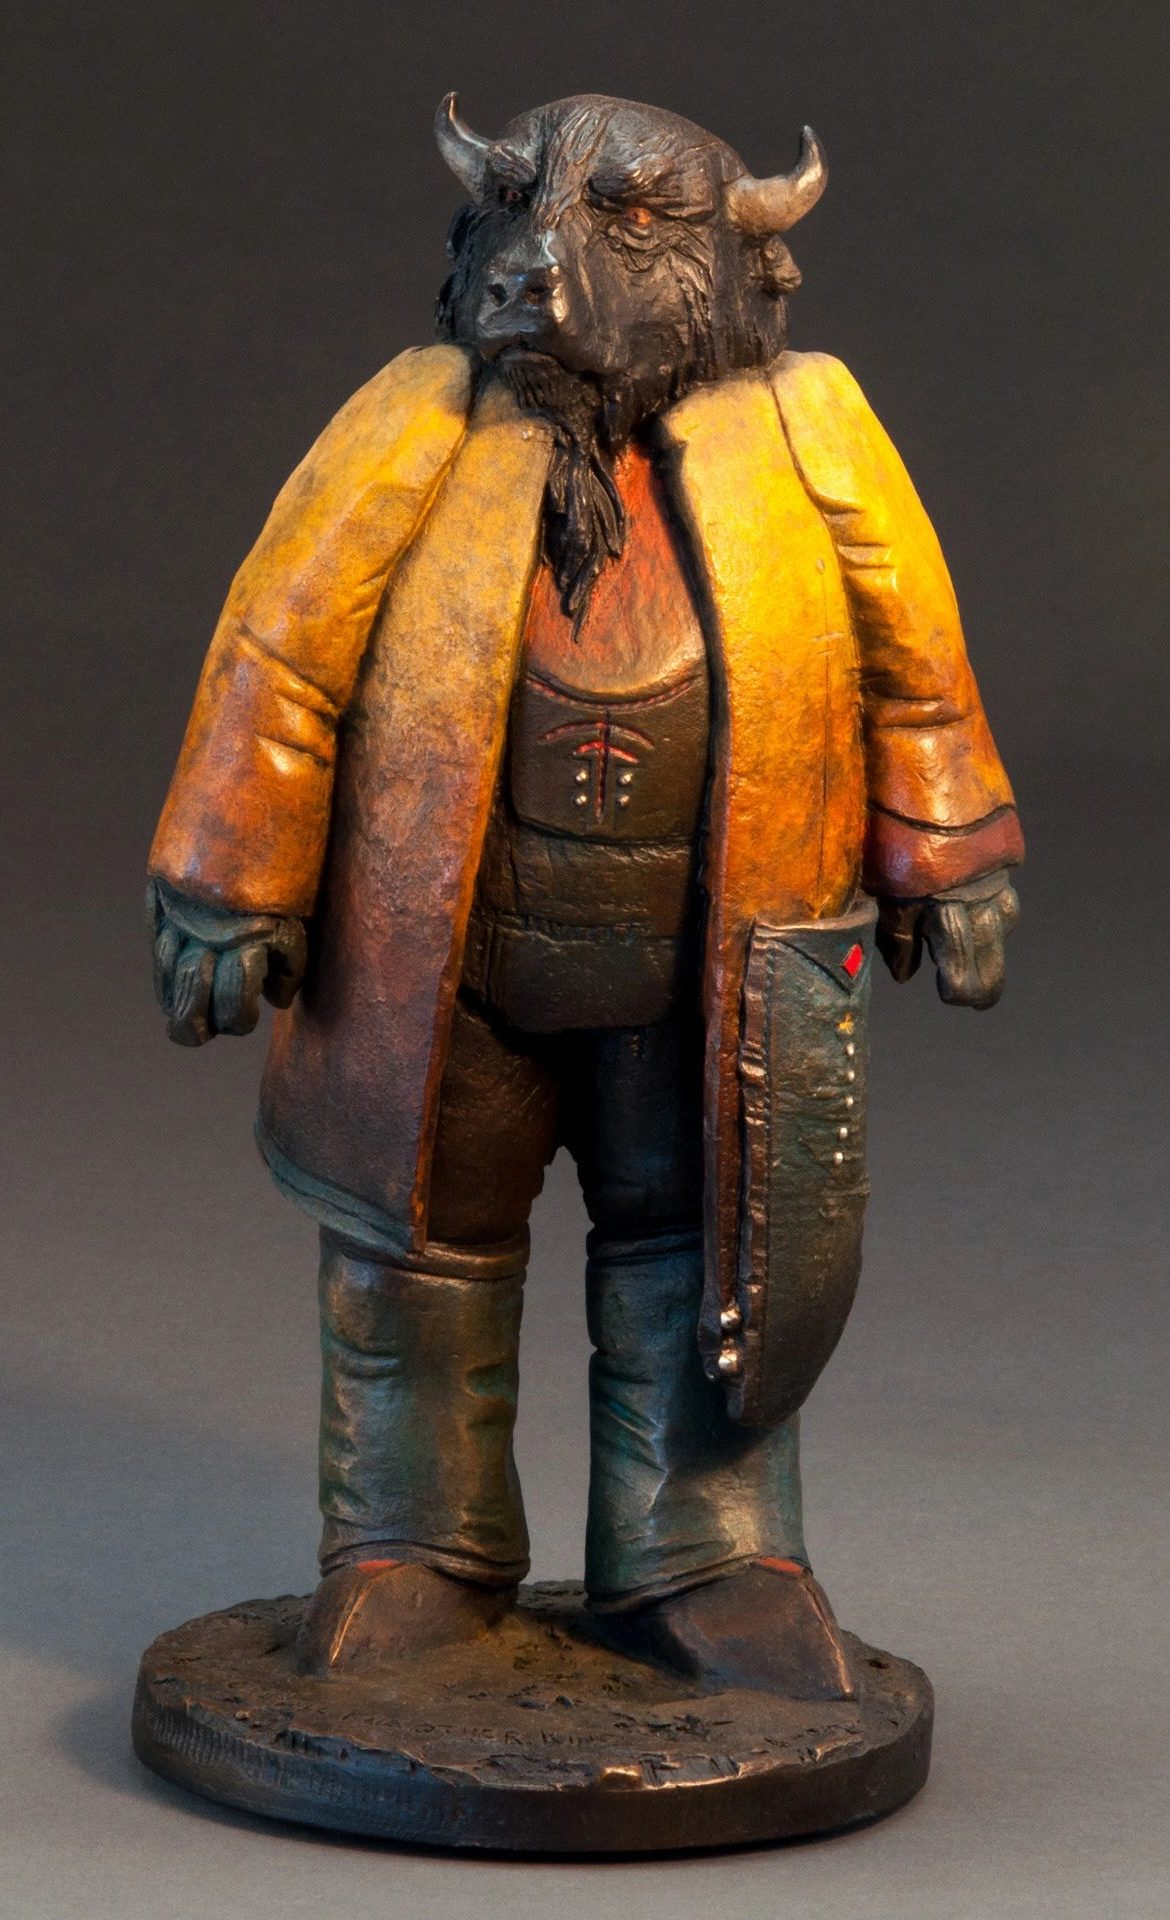 We're All the Other Kind, Brubaker, Bronze Sculpture, Rogoway Gallery